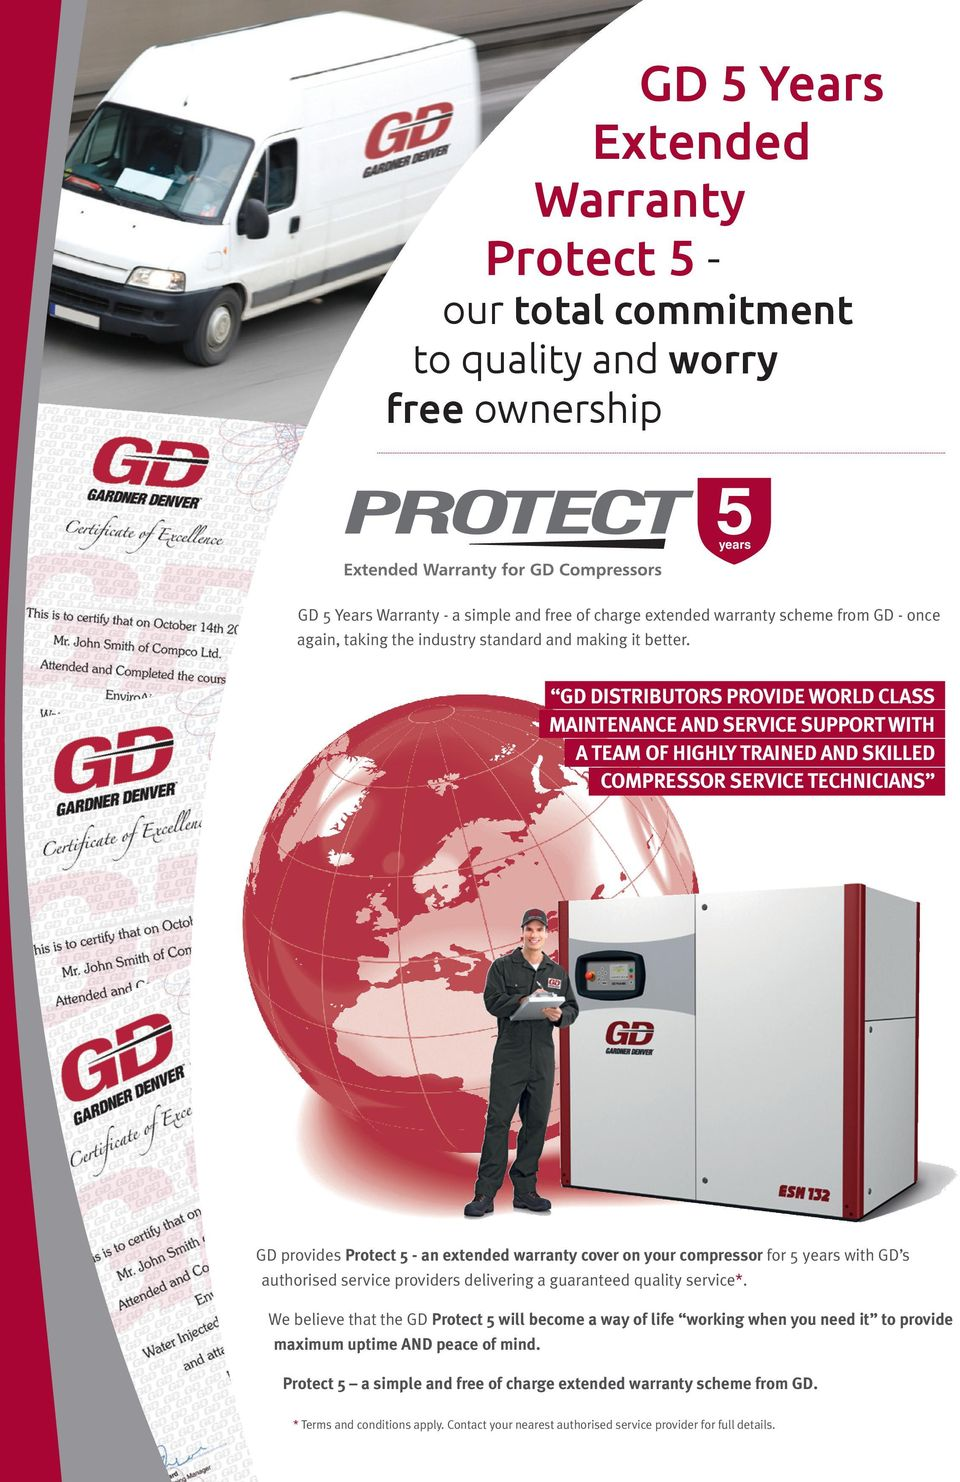 GD DIstributors provide world class maintenance and service support with a team of highly trained and skilled compressor service technicians GD provides Protect 5 - an extended warranty cover on your